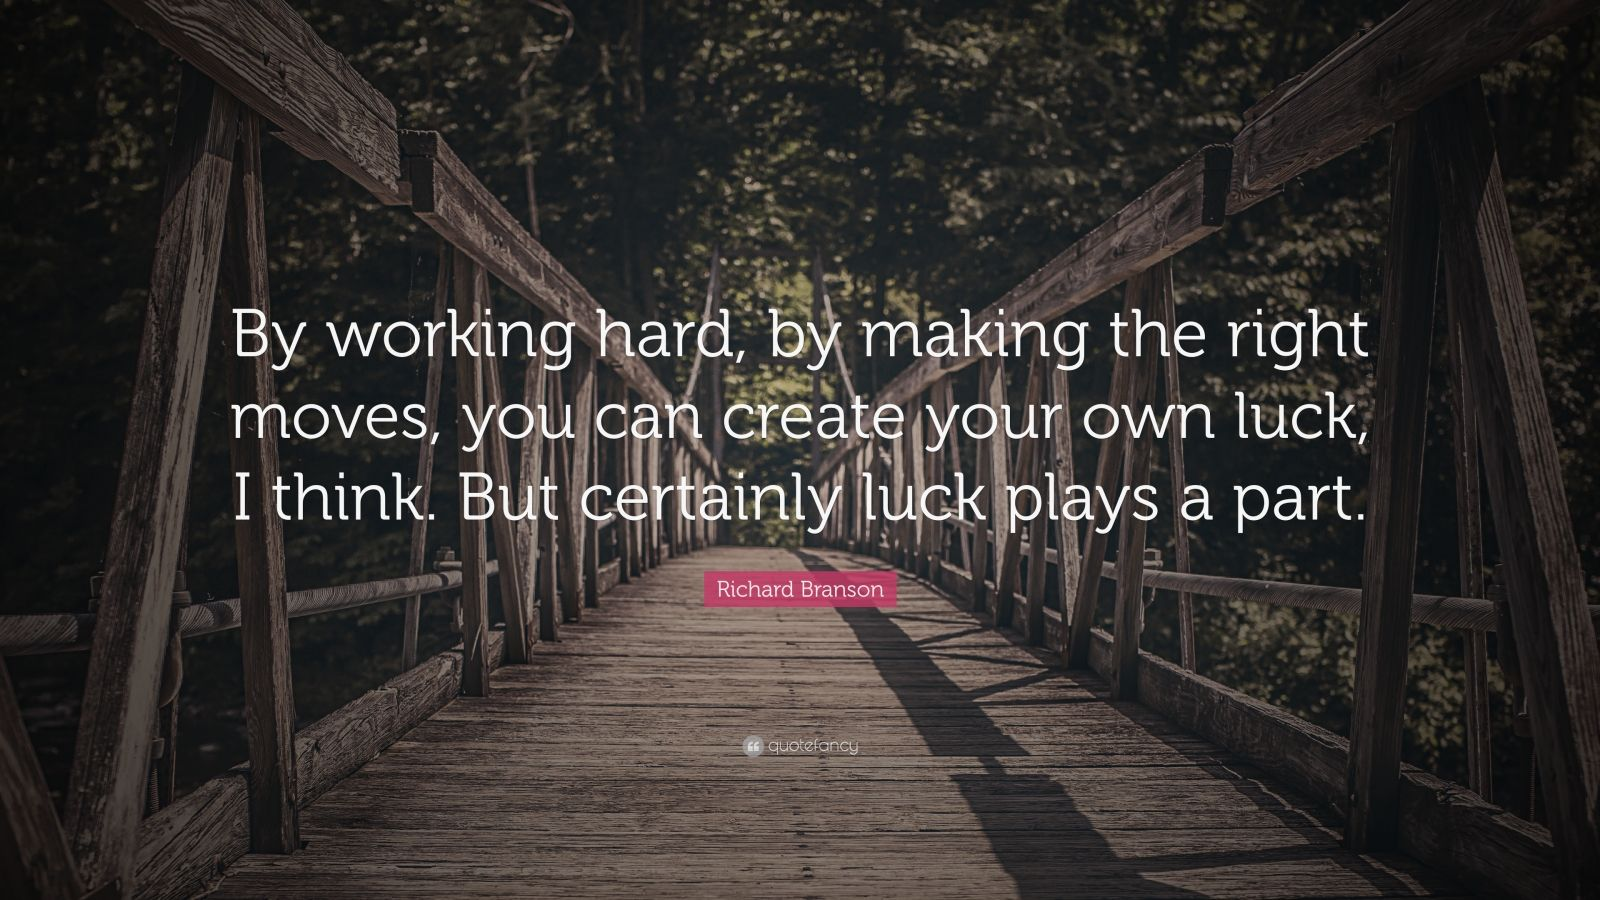 """Richard Branson Quote: """"By working hard, by making the right moves, you can create your own luck, I think. But certainly luck plays a part."""""""